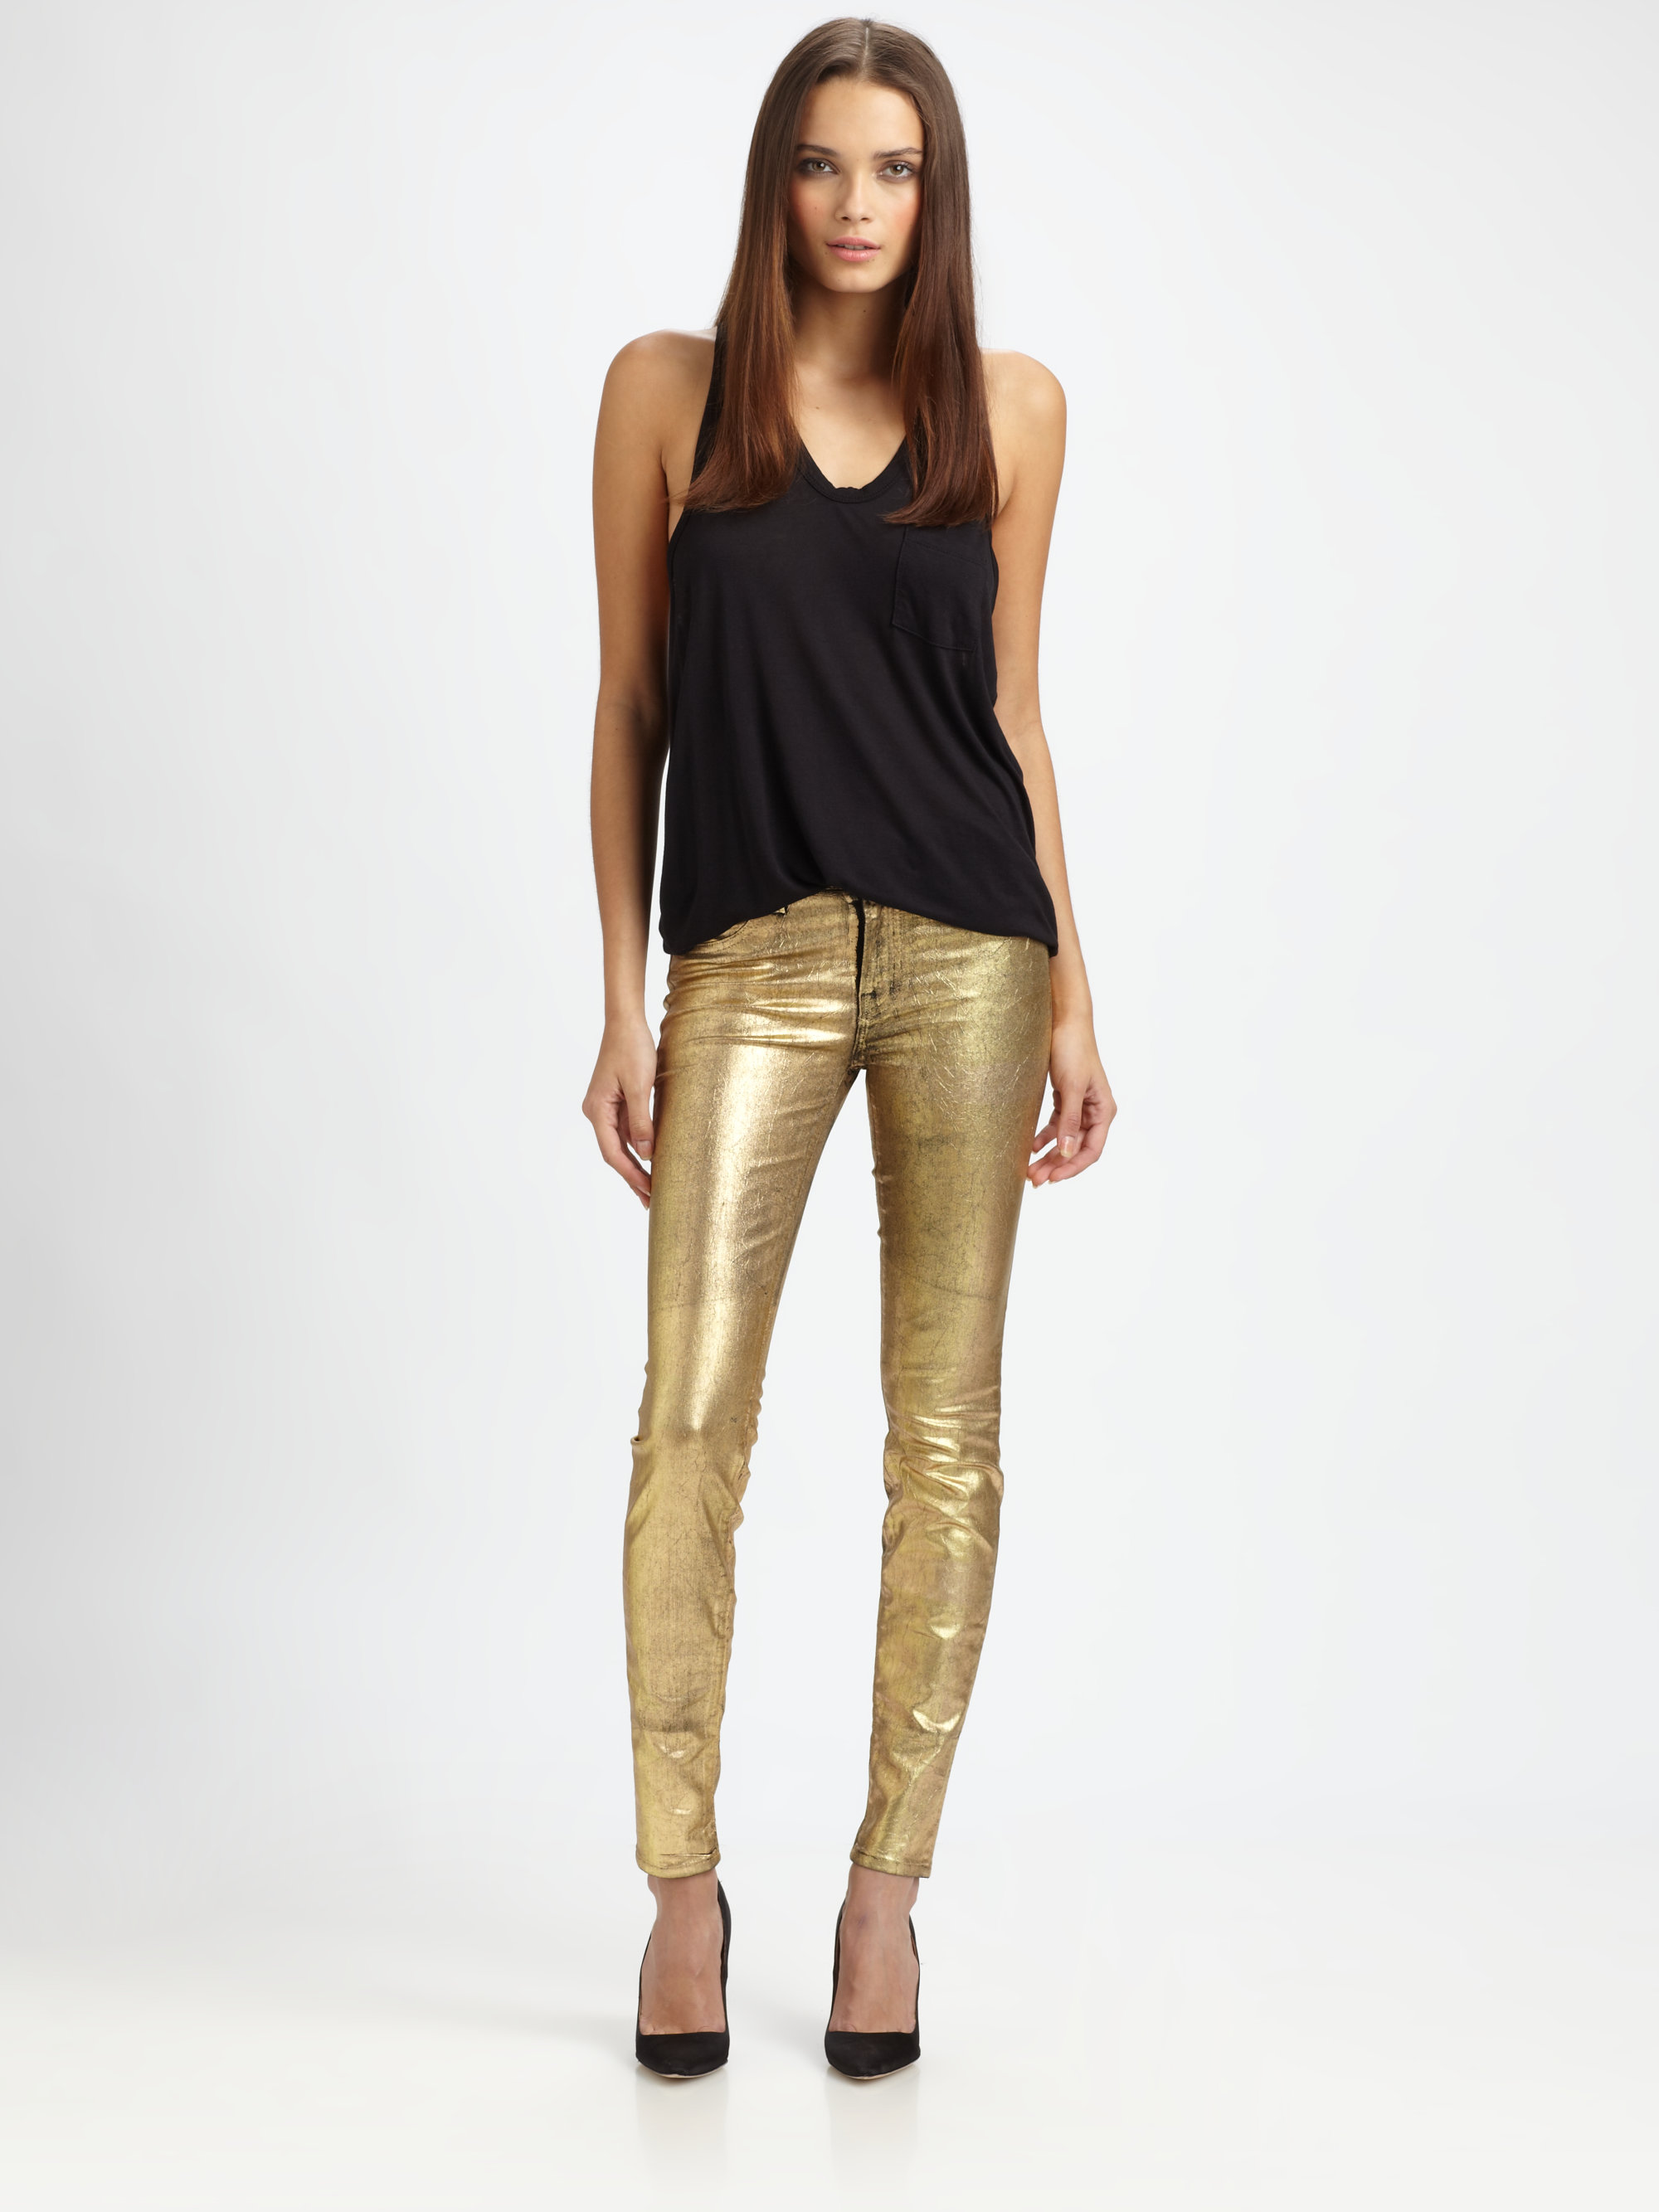 Lyst - J Brand Coated Metallic Midrise Leggings in Metallic